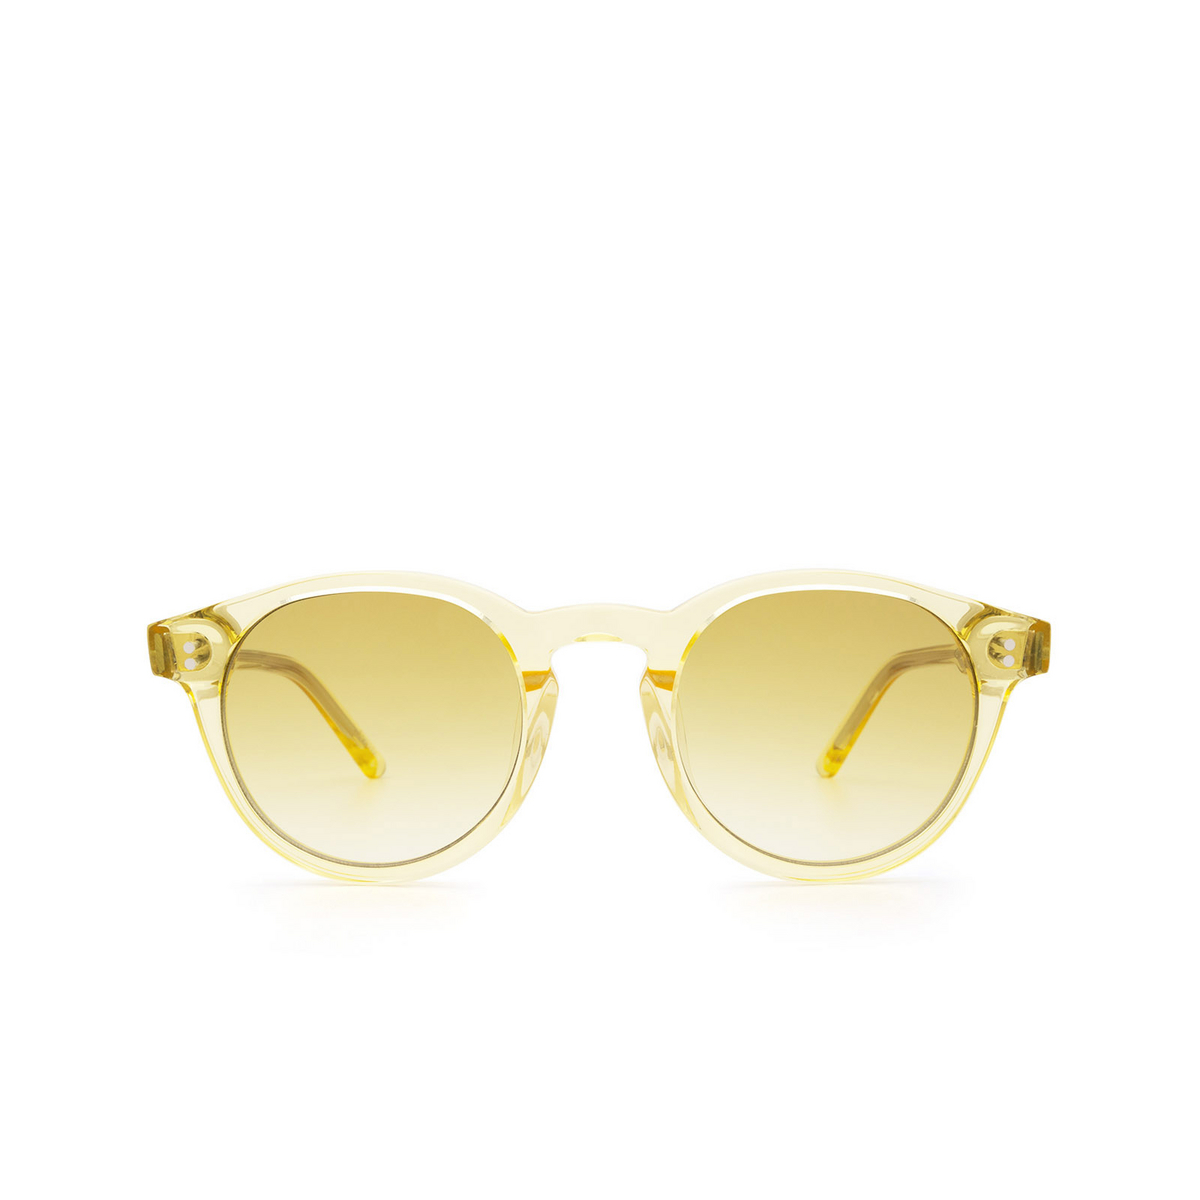 Chimi® Round Sunglasses: 03 color Yellow - front view.